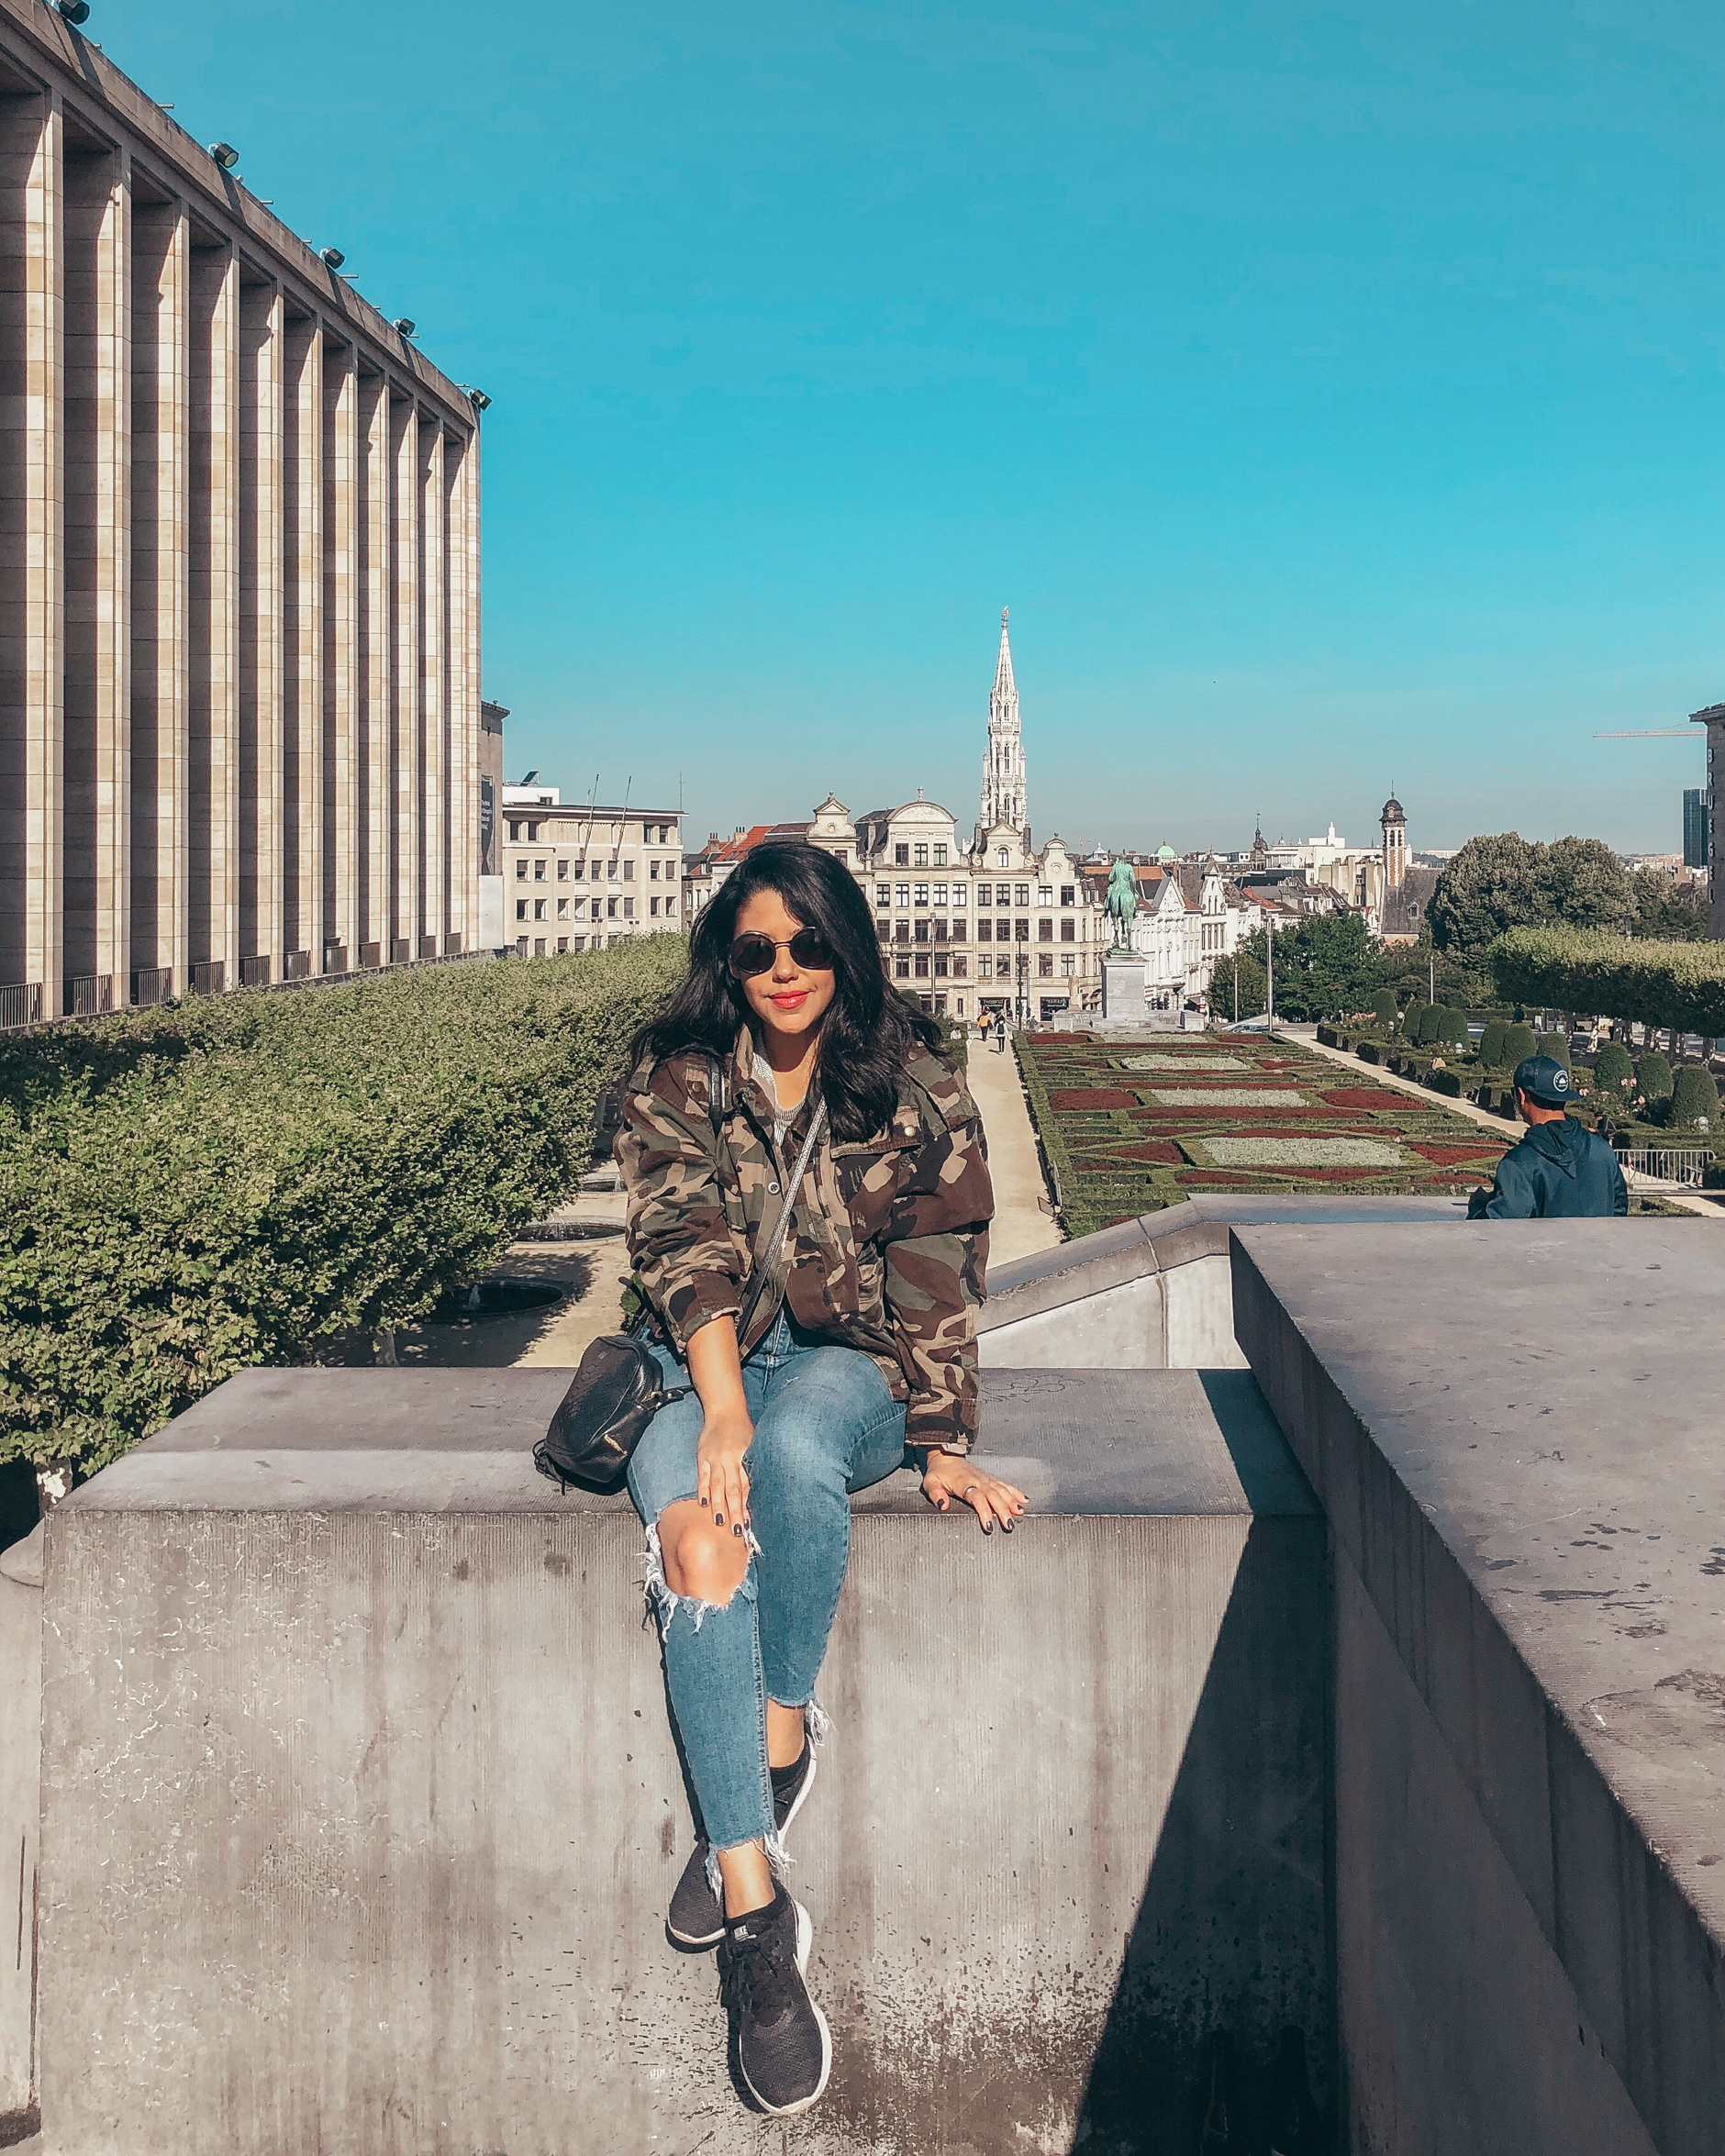 mont des arts brussels naty michele